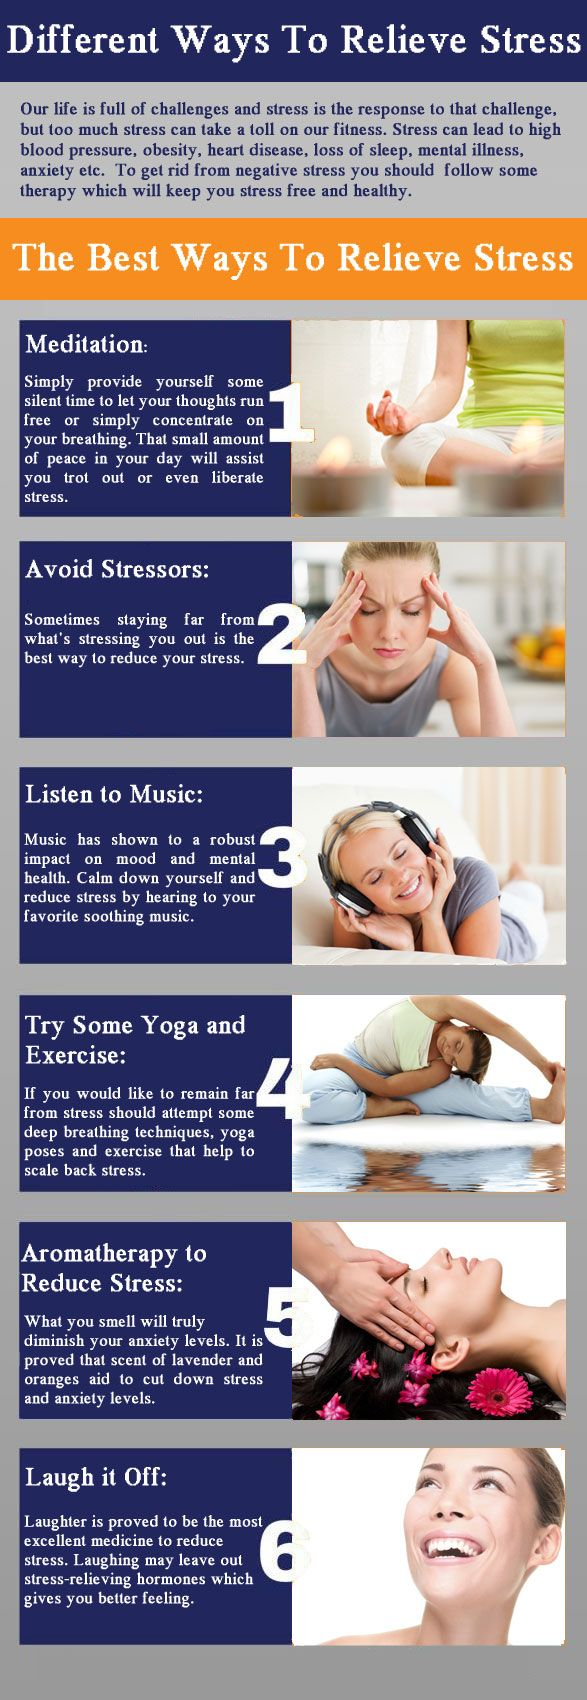 To get rid from negative stress you should take some effective stress relievers along with the following therapy which will keep you stress free and healthy.  Meditation, Avoid stressors, Listen to music, Try some yoga and exercise, Aromatherapy to reduce stress, Laugh it off For more : http://www.buykamagragold.com/blog